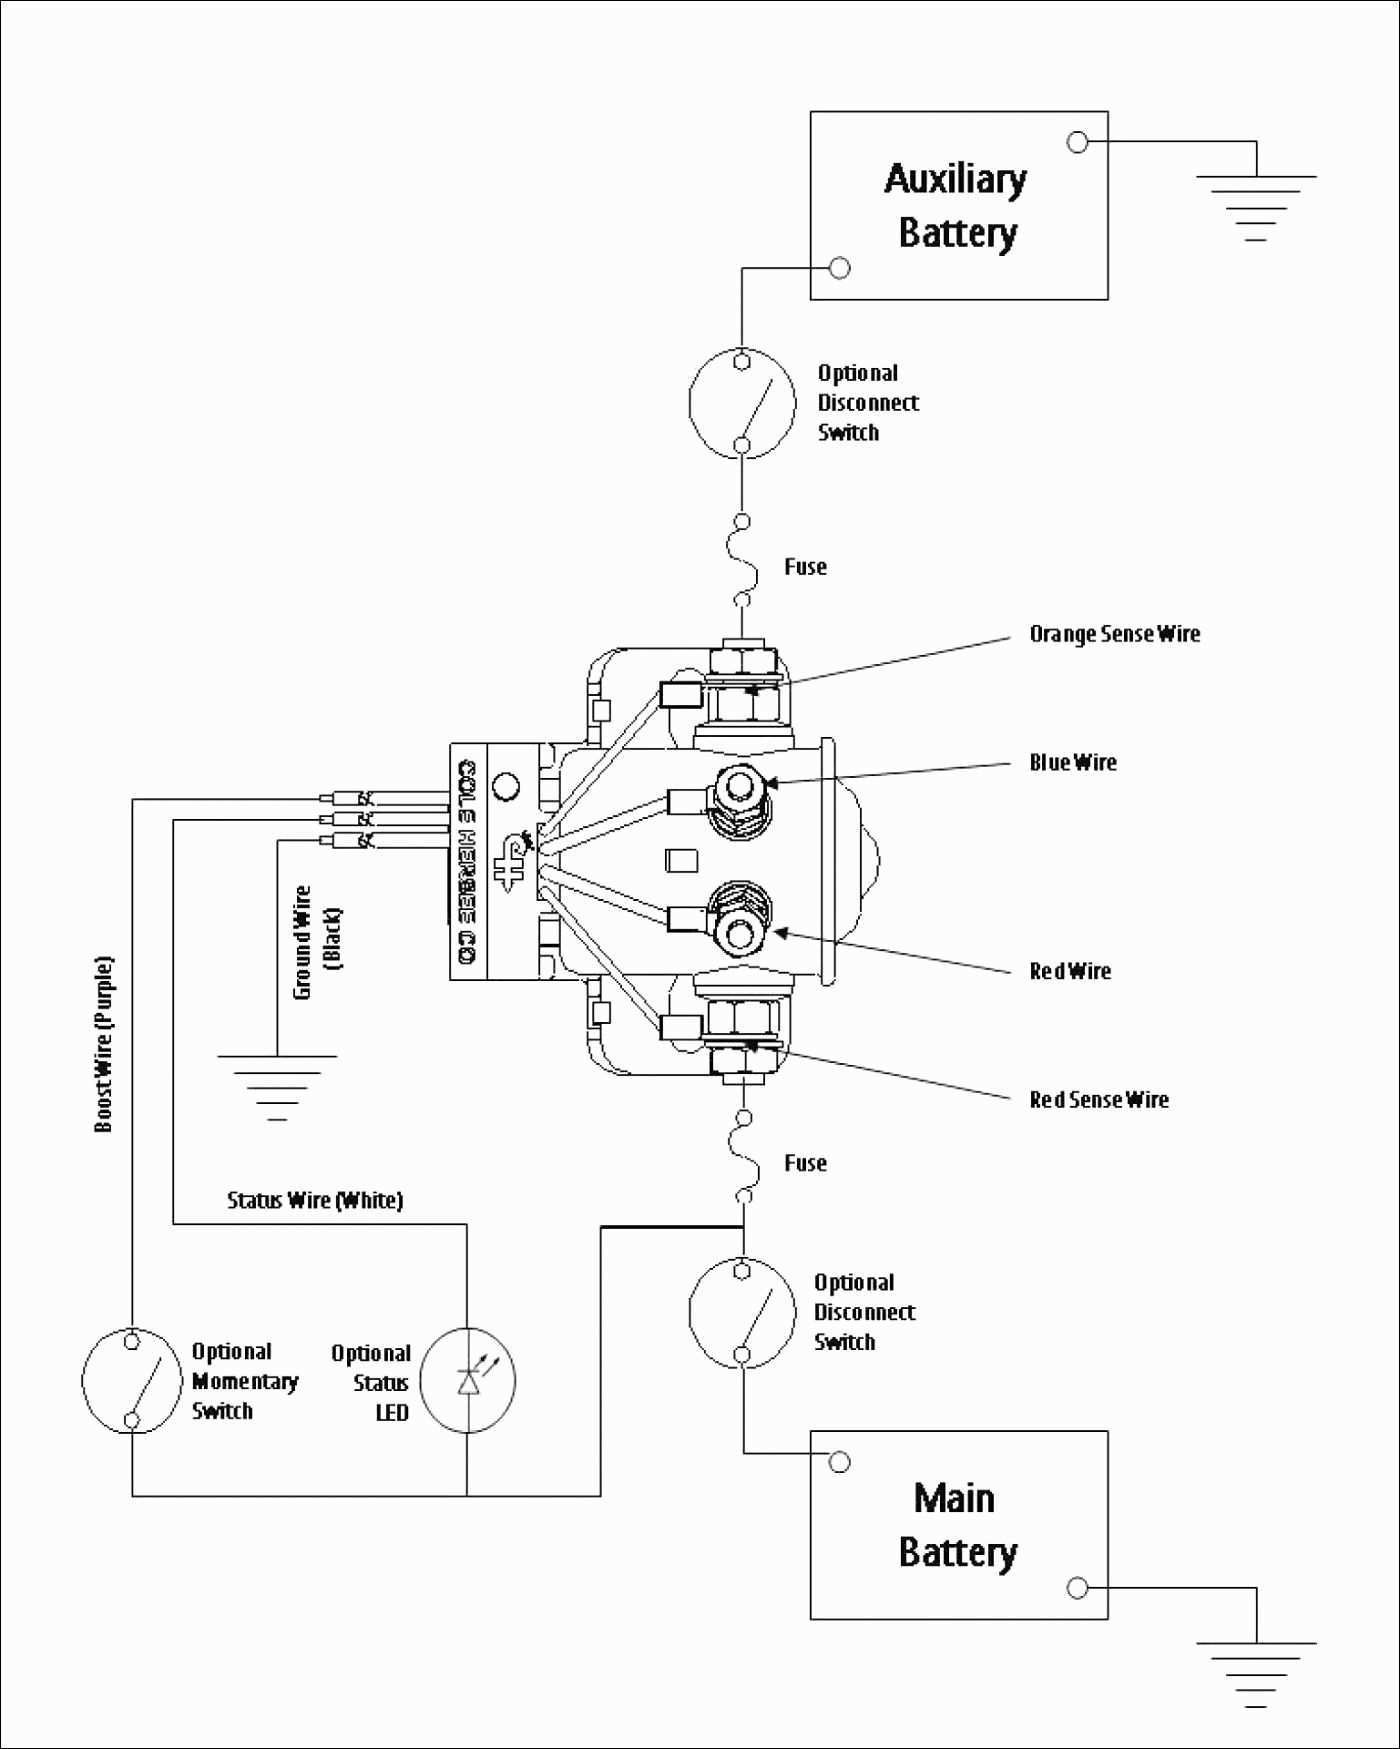 Toyota 0c030 Wiring Diagram Toyota Camry Wiring System